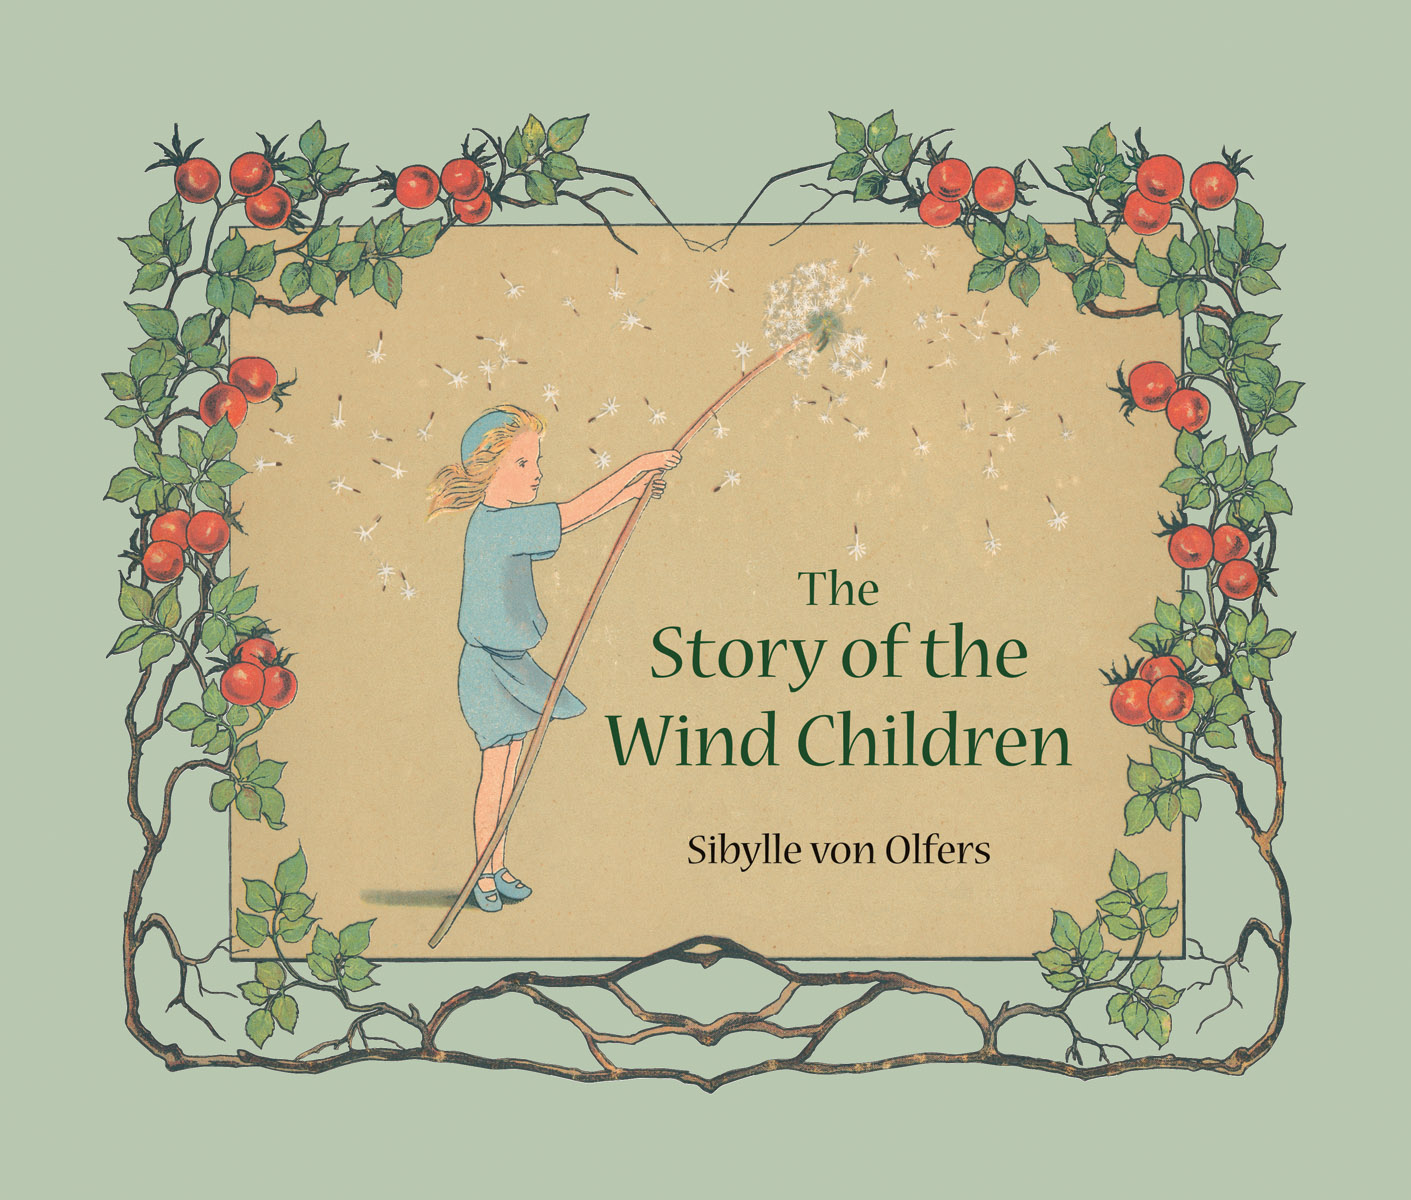 Sibylle von Olfers, The Story of the Wind Children cover image